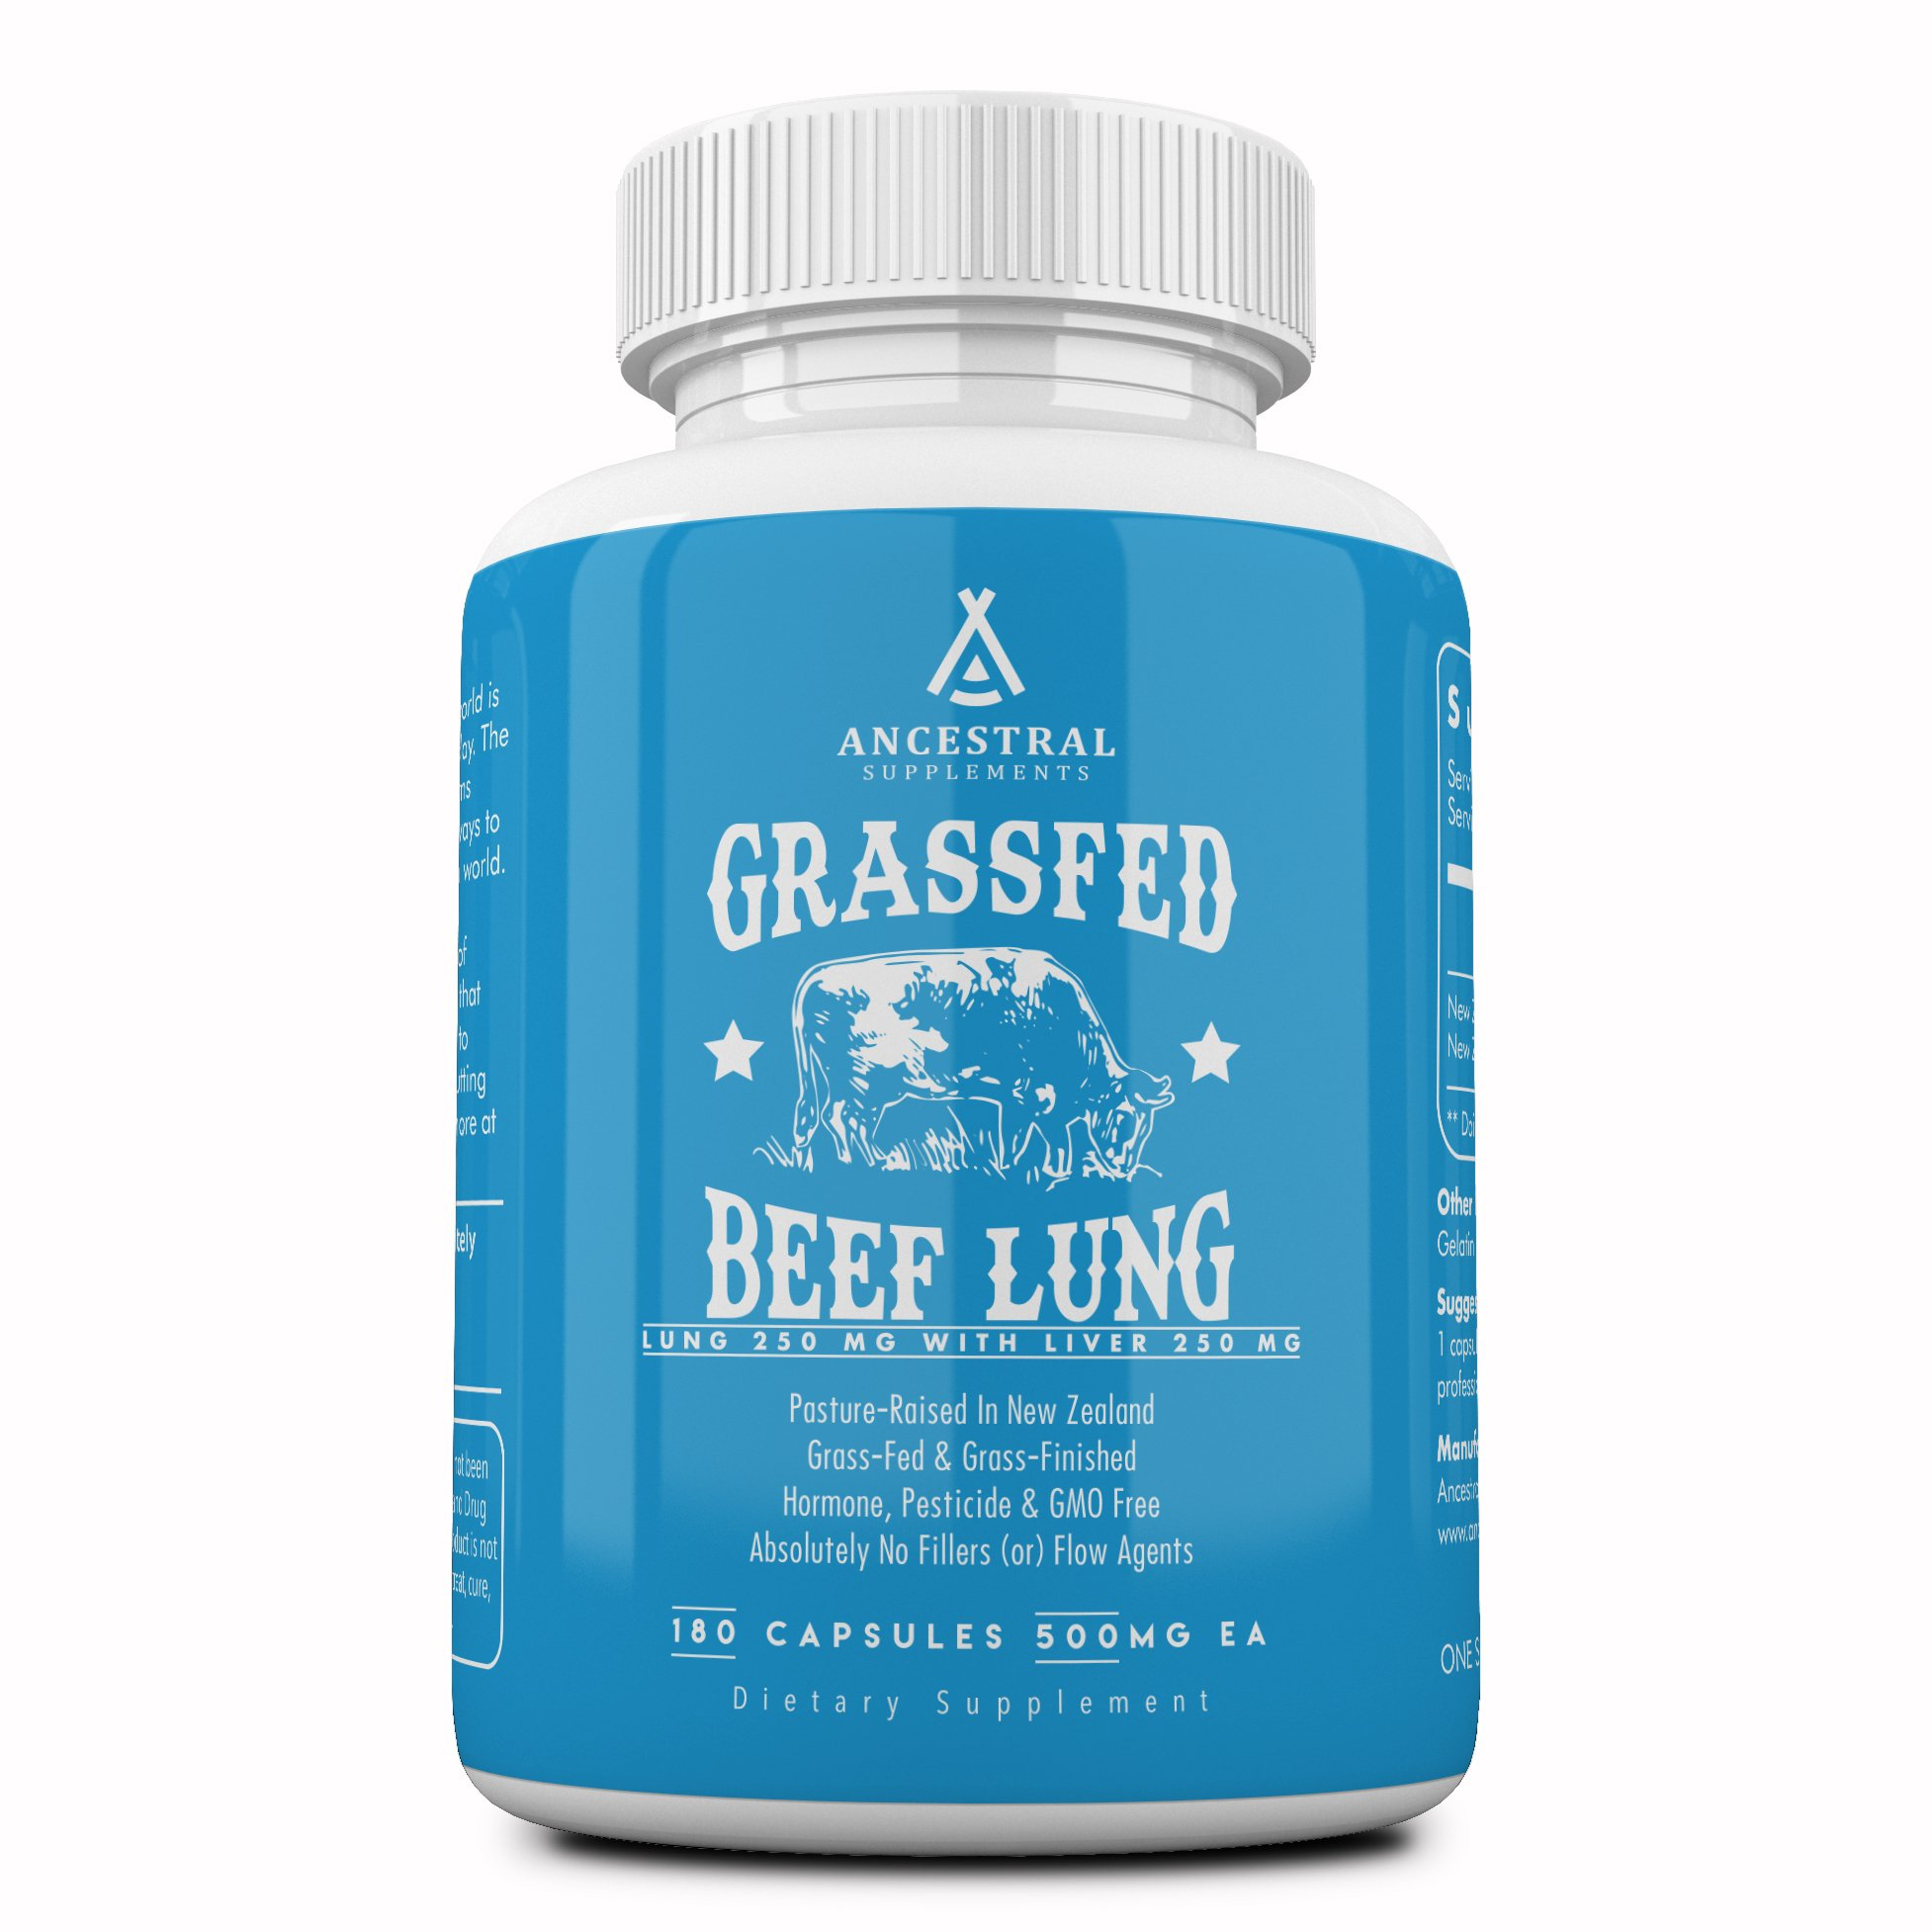 Ancestral Supplements Beef Lung (w/Liver) — Supports Lung, Respiratory, Vascular and Circulatory Health (180 Capsules)